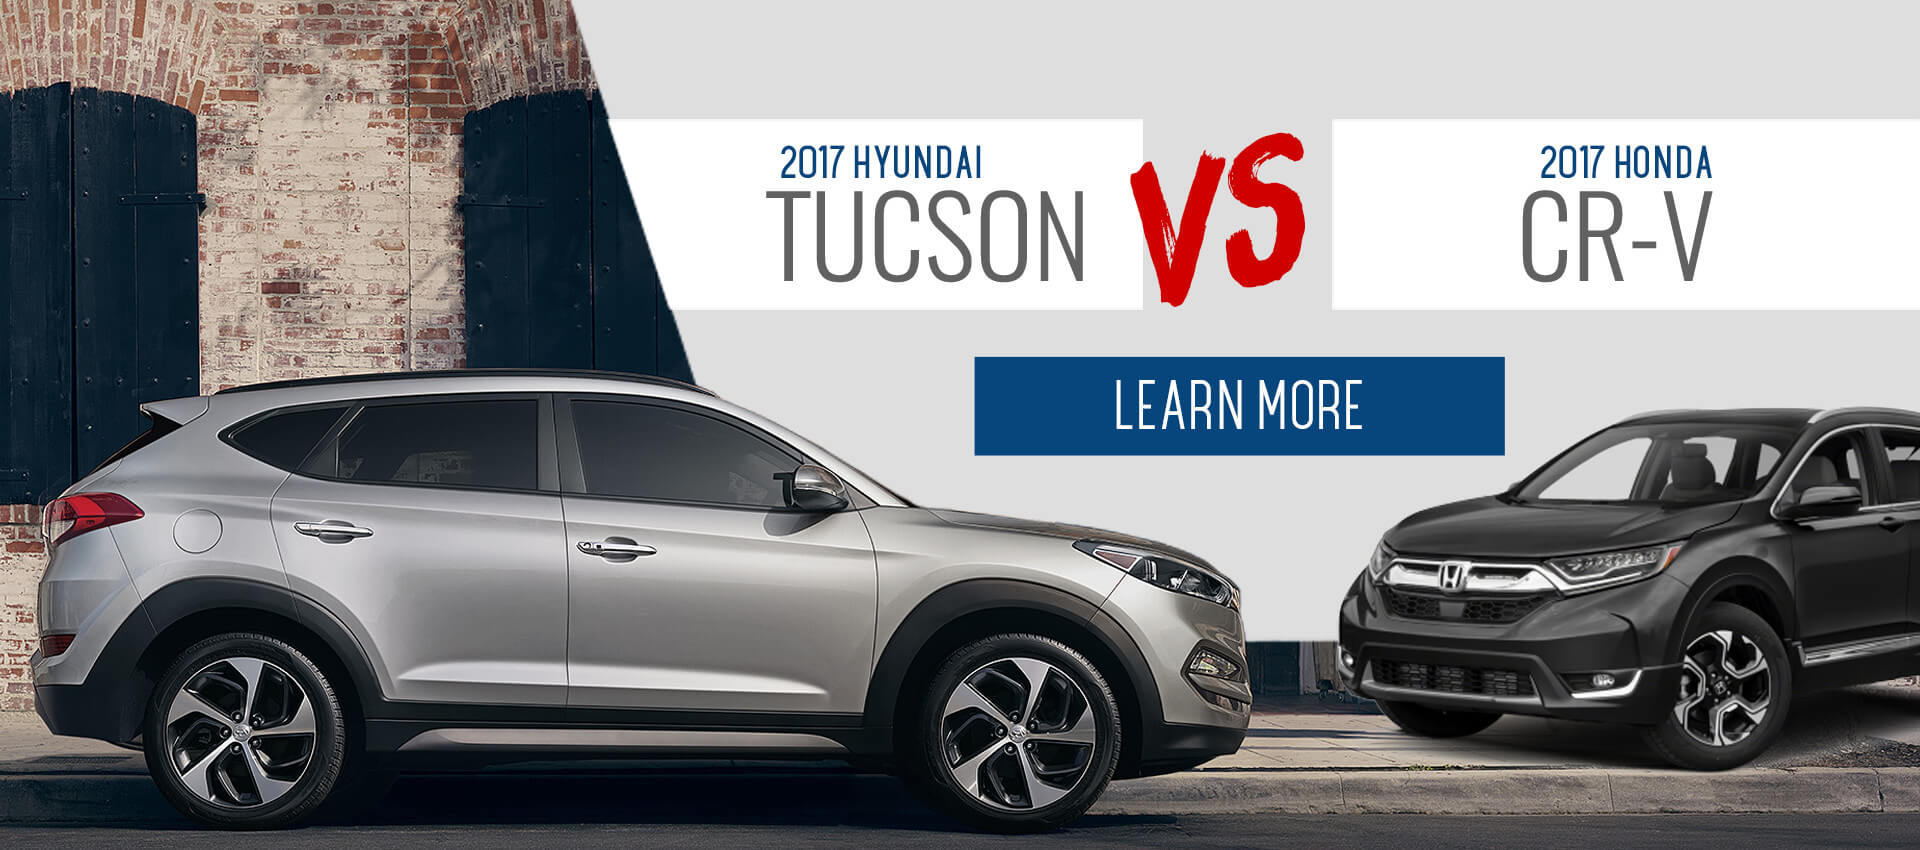 Tucson Vs. CR-V